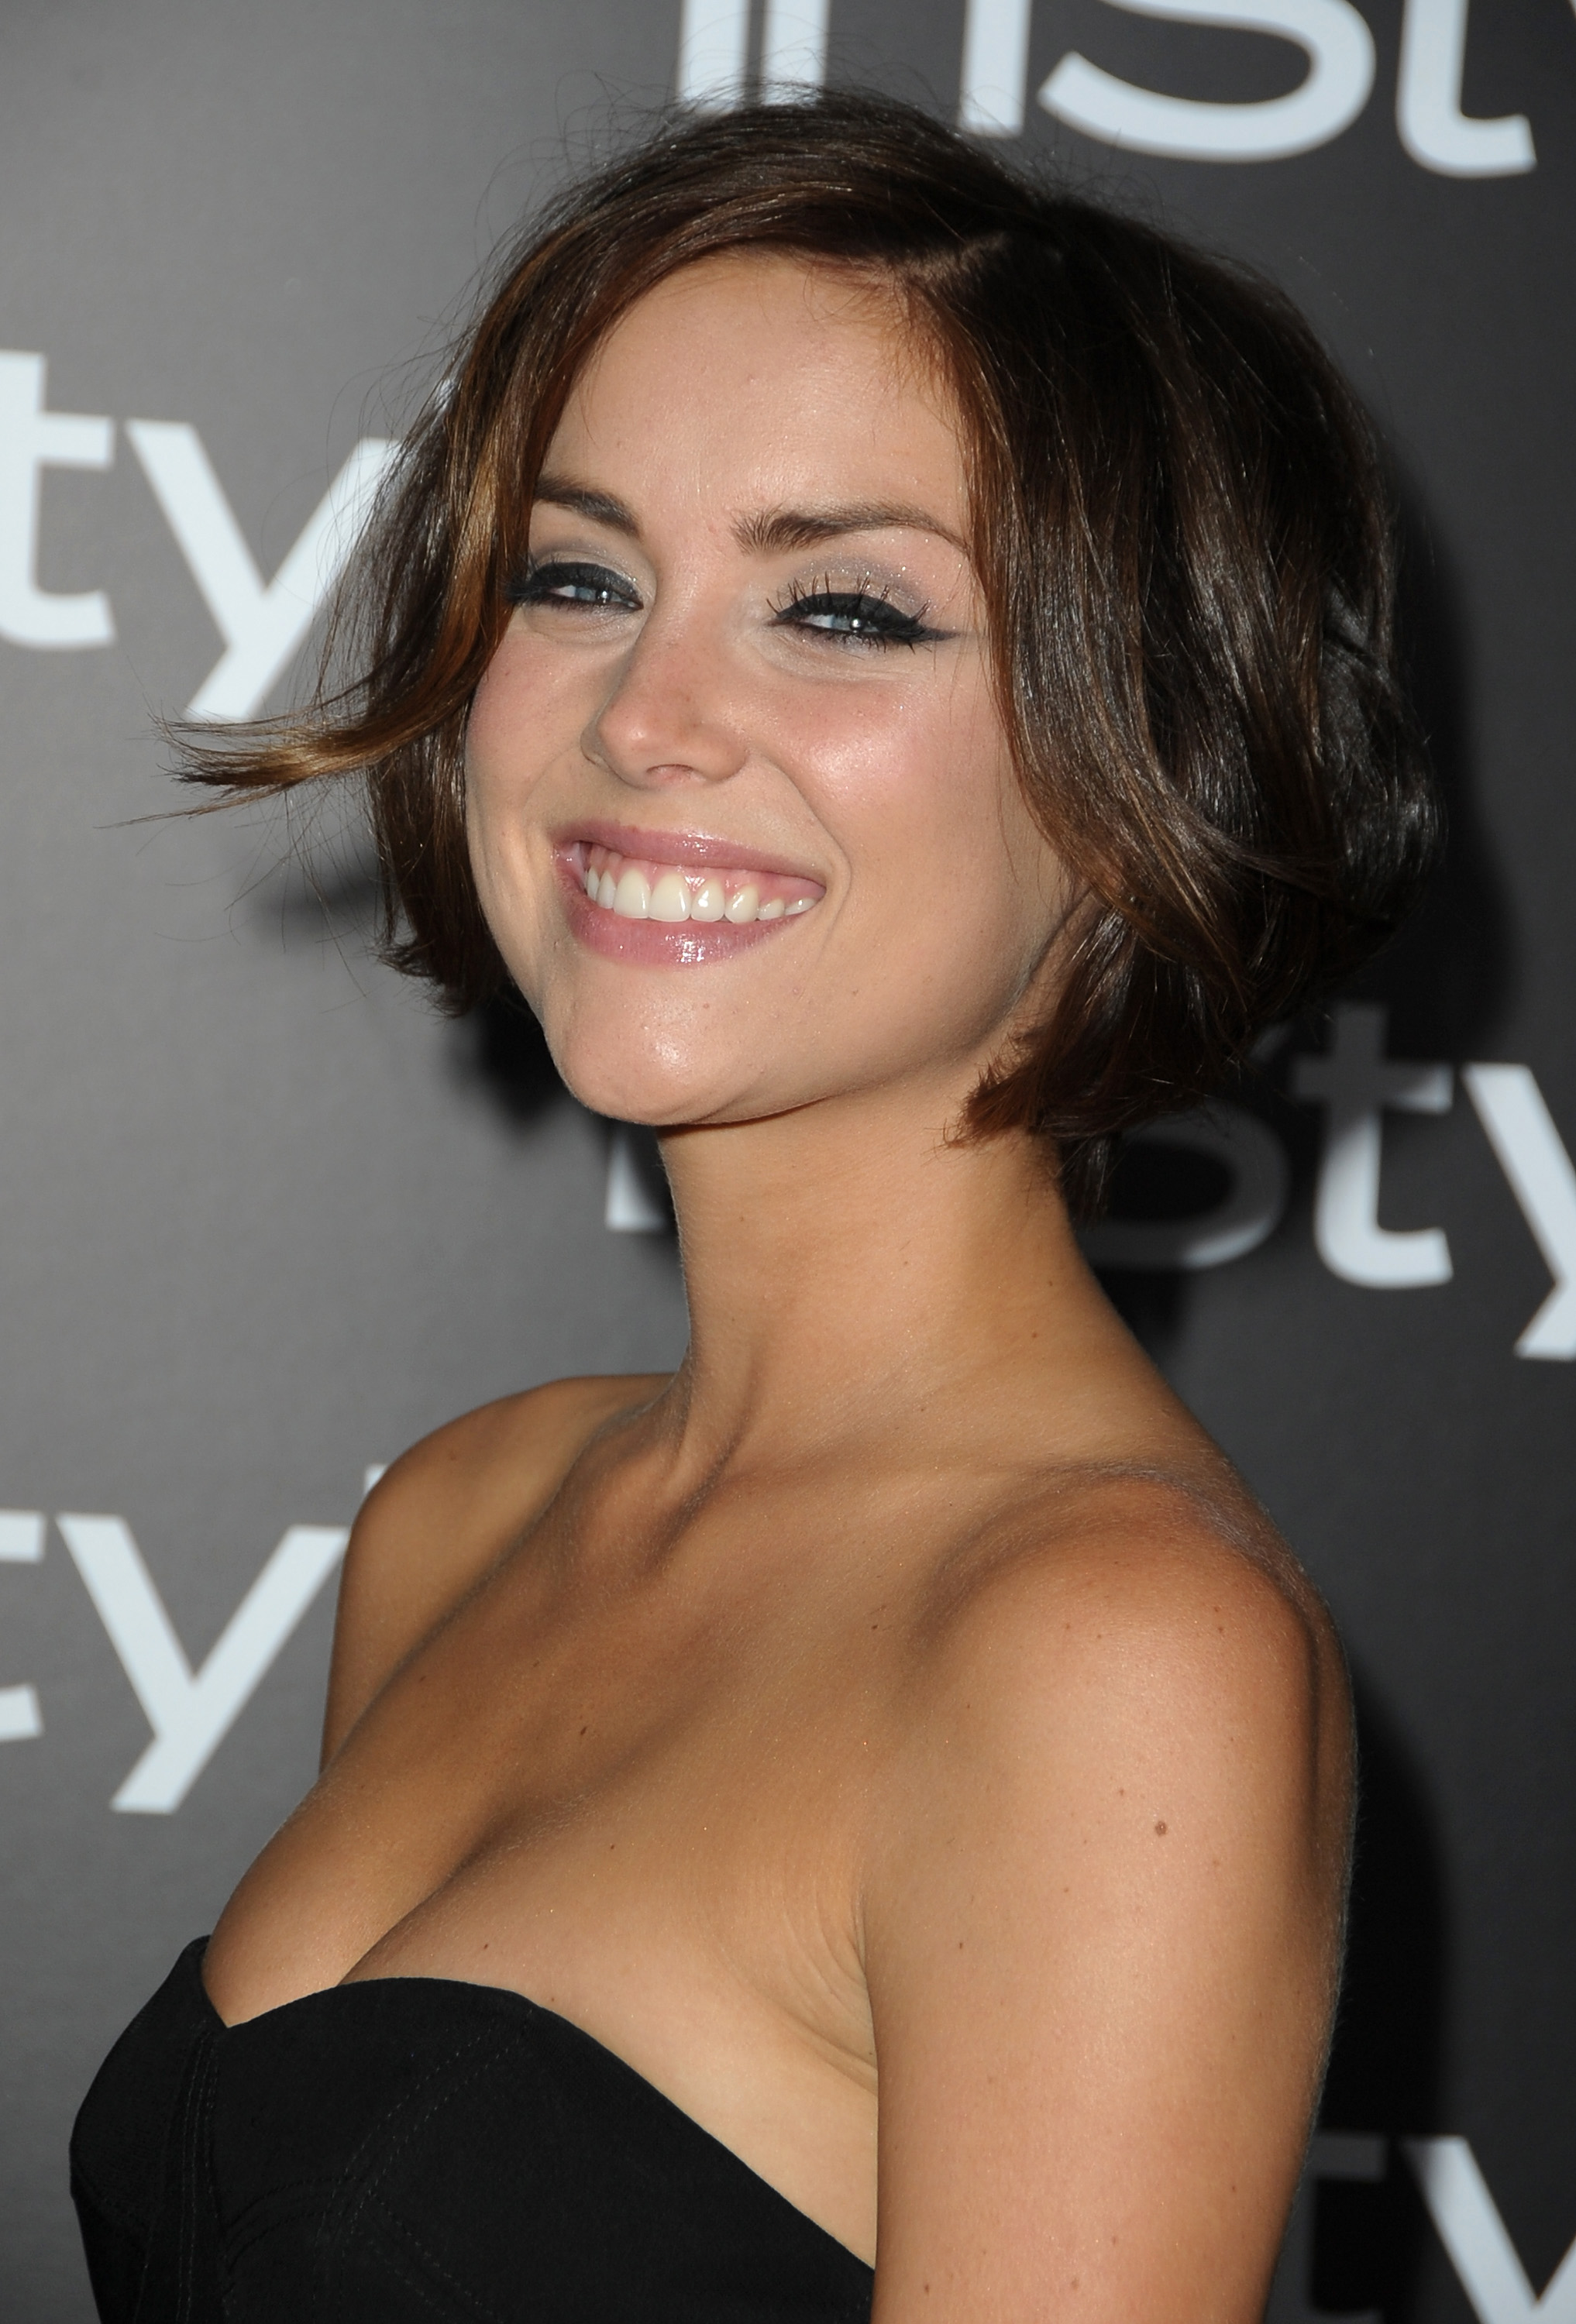 jessica stroup dogjessica stroup instagram, jessica stroup gif hunt, jessica stroup tumblr, jessica stroup gif, jessica stroup 2016, jessica stroup 2017, jessica stroup iron fist, jessica stroup -, jessica stroup fansite, jessica stroup bellazon, jessica stroup height, jessica stroup relationship, jessica stroup film, jessica stroup hq, jessica stroup tongue, jessica stroup dog, jessica stroup looks like, jessica stroup wdw, jessica stroup interview, jessica stroup jack reacher